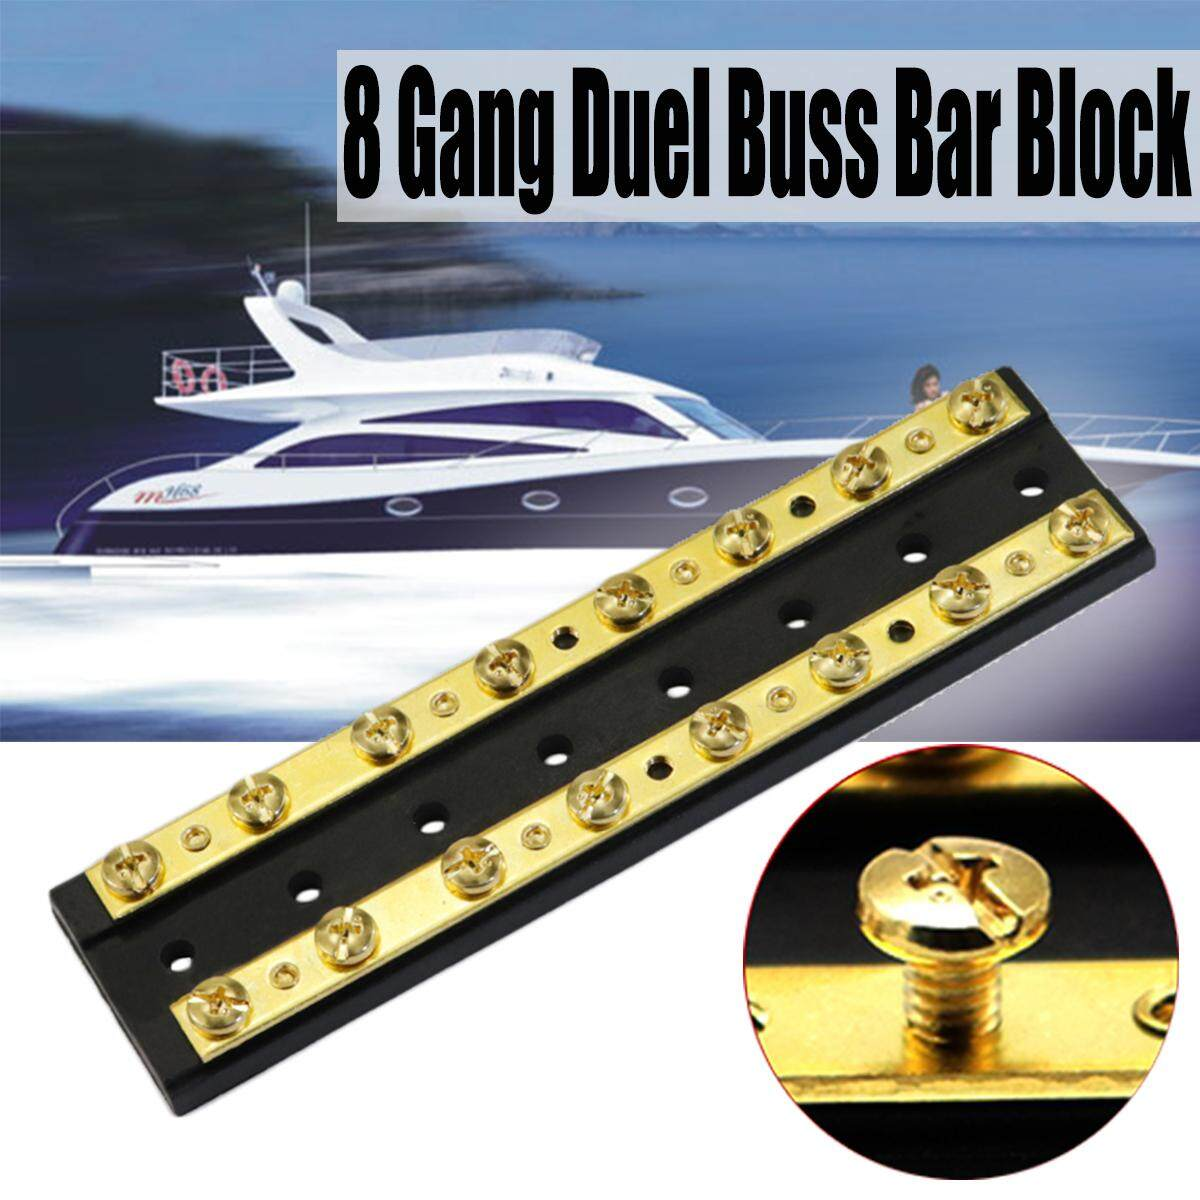 【free Shipping + Flash Deal】marine Boat Rv Brass 4 6 8 Gang Duel Buss Bar Block Positive & Negative (f3883-8p) By Freebang.